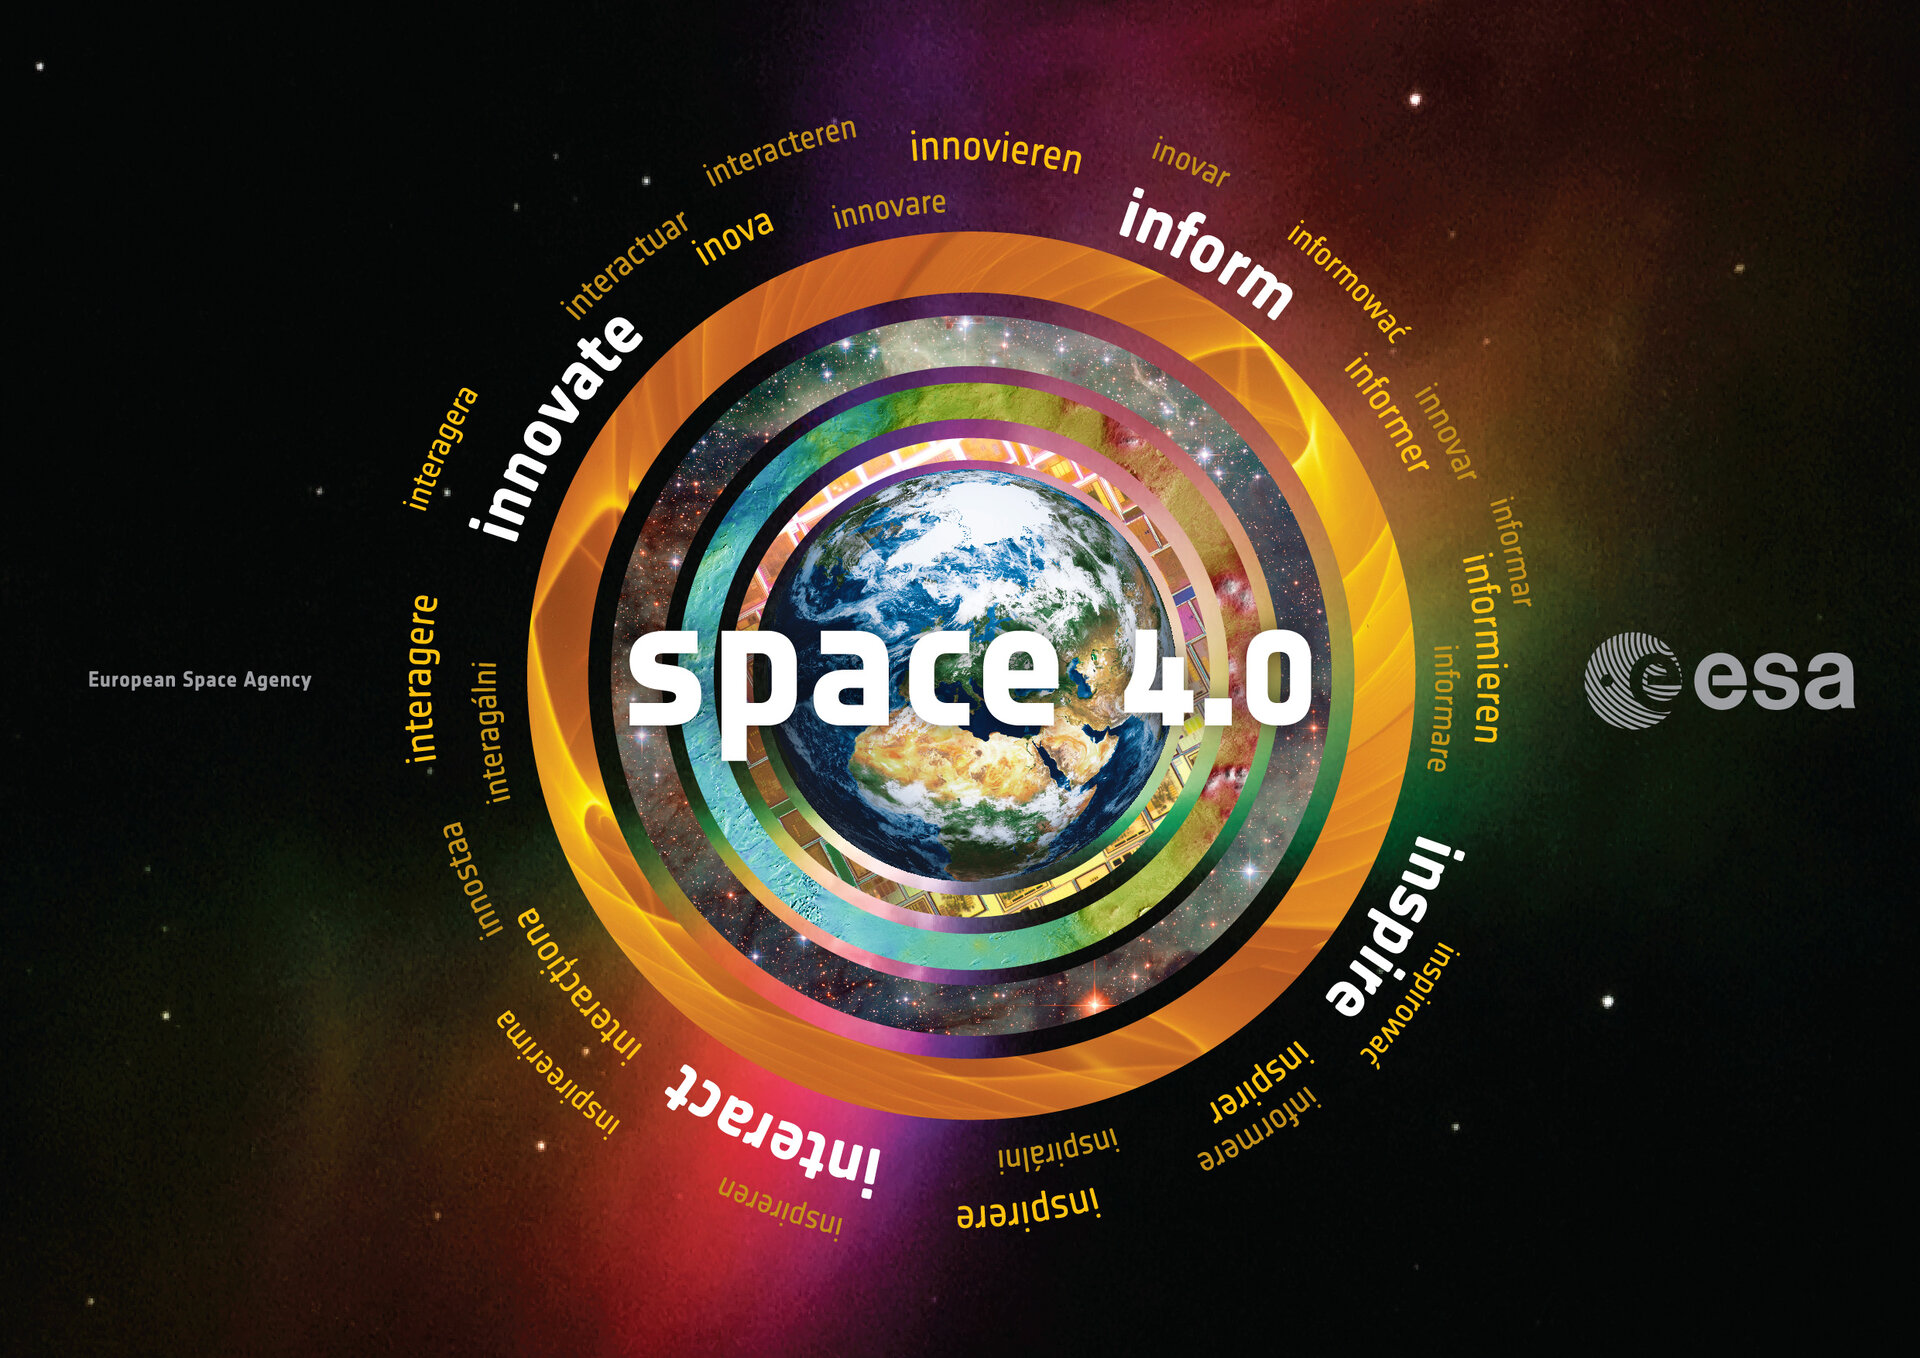 Space 4.0